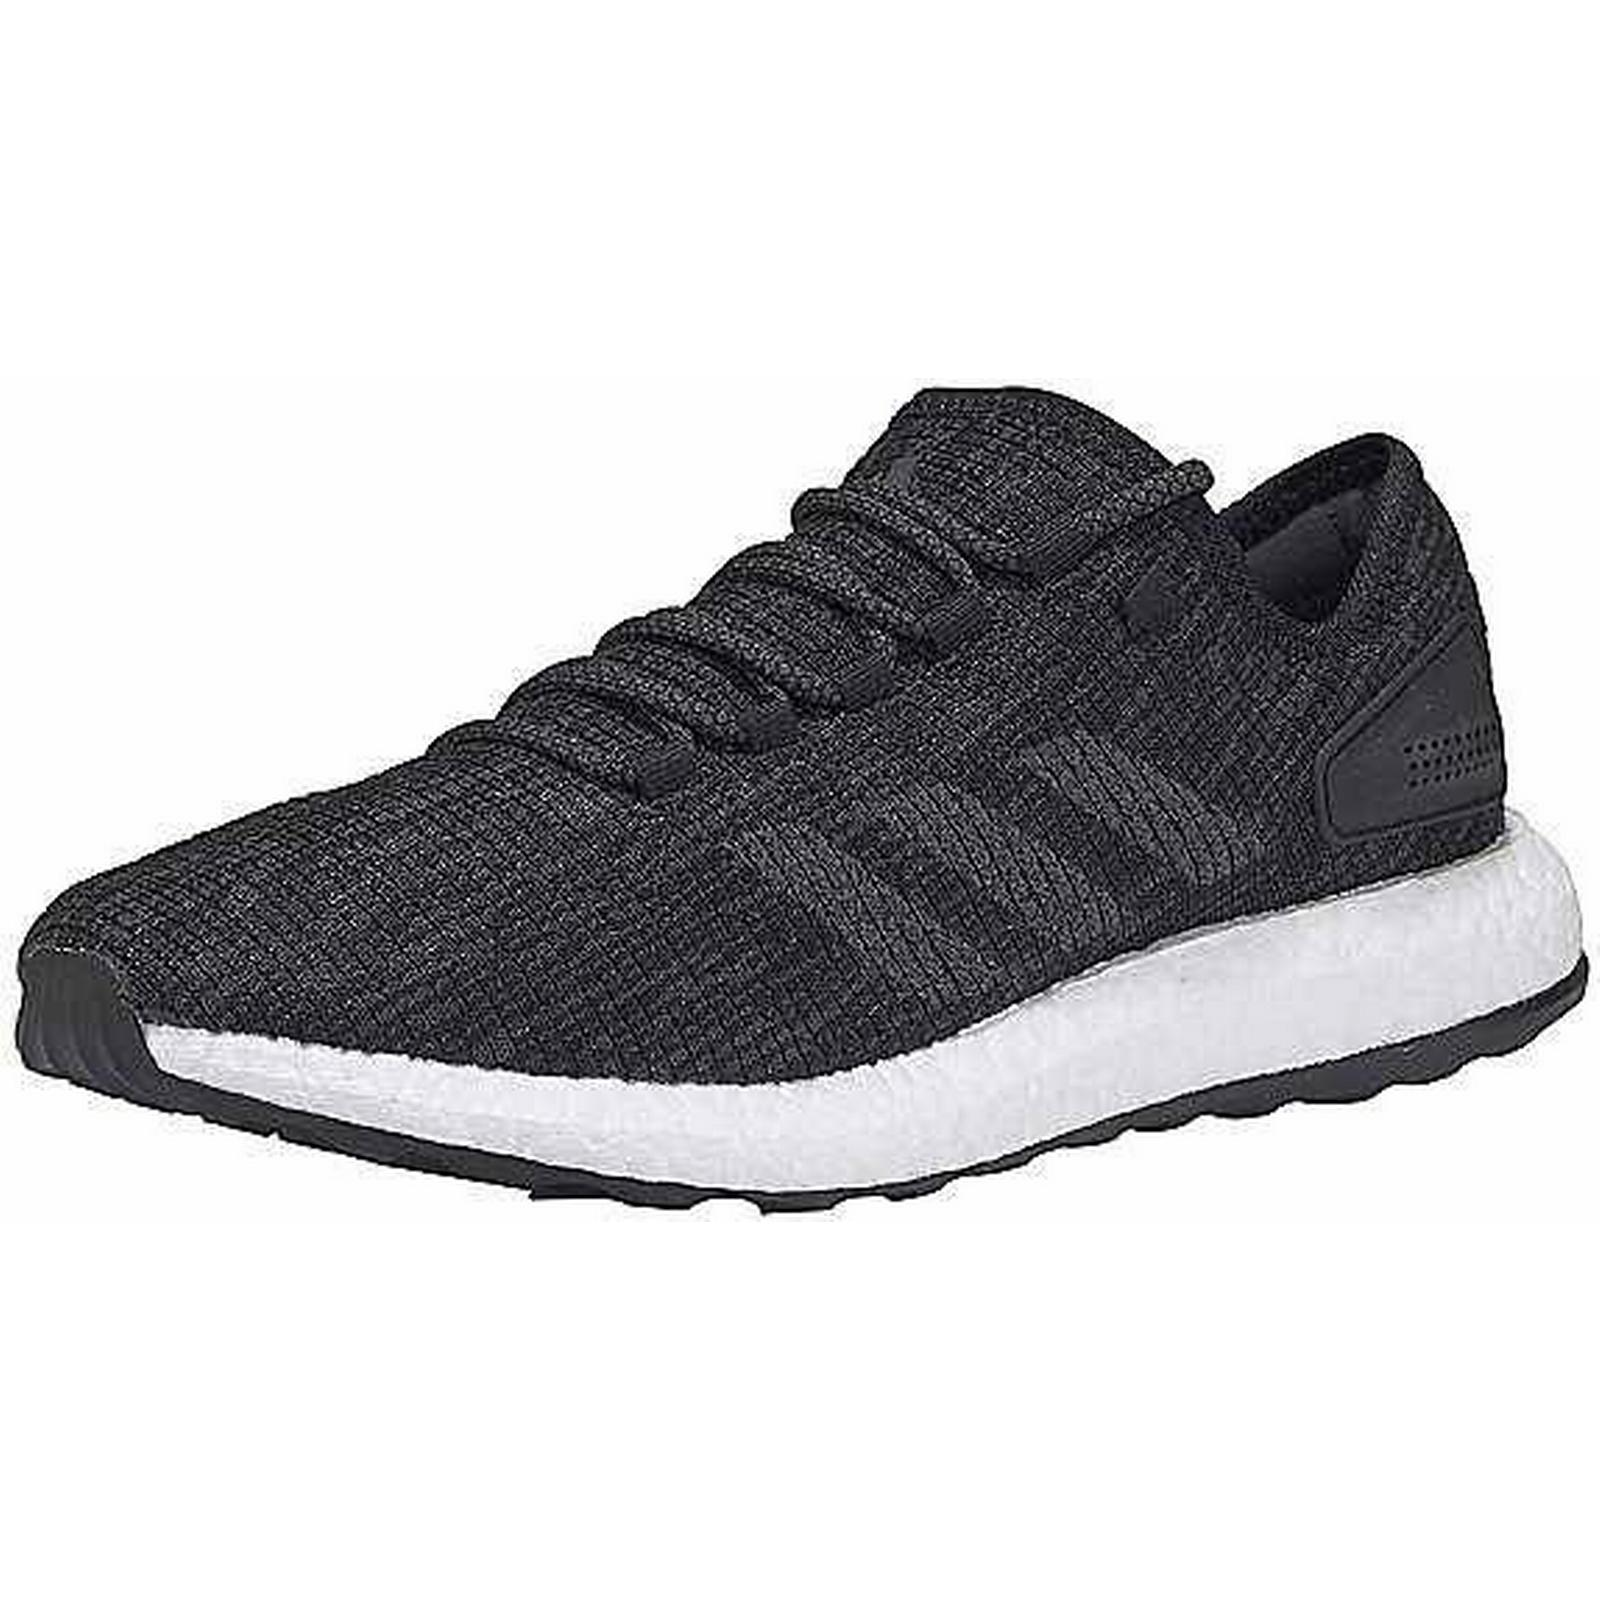 Adidas Performance 'Pure Boost' Running Shoes Styles by adidas Performance-Gentlemen/Ladies- Different Styles Shoes And Styles 03afea